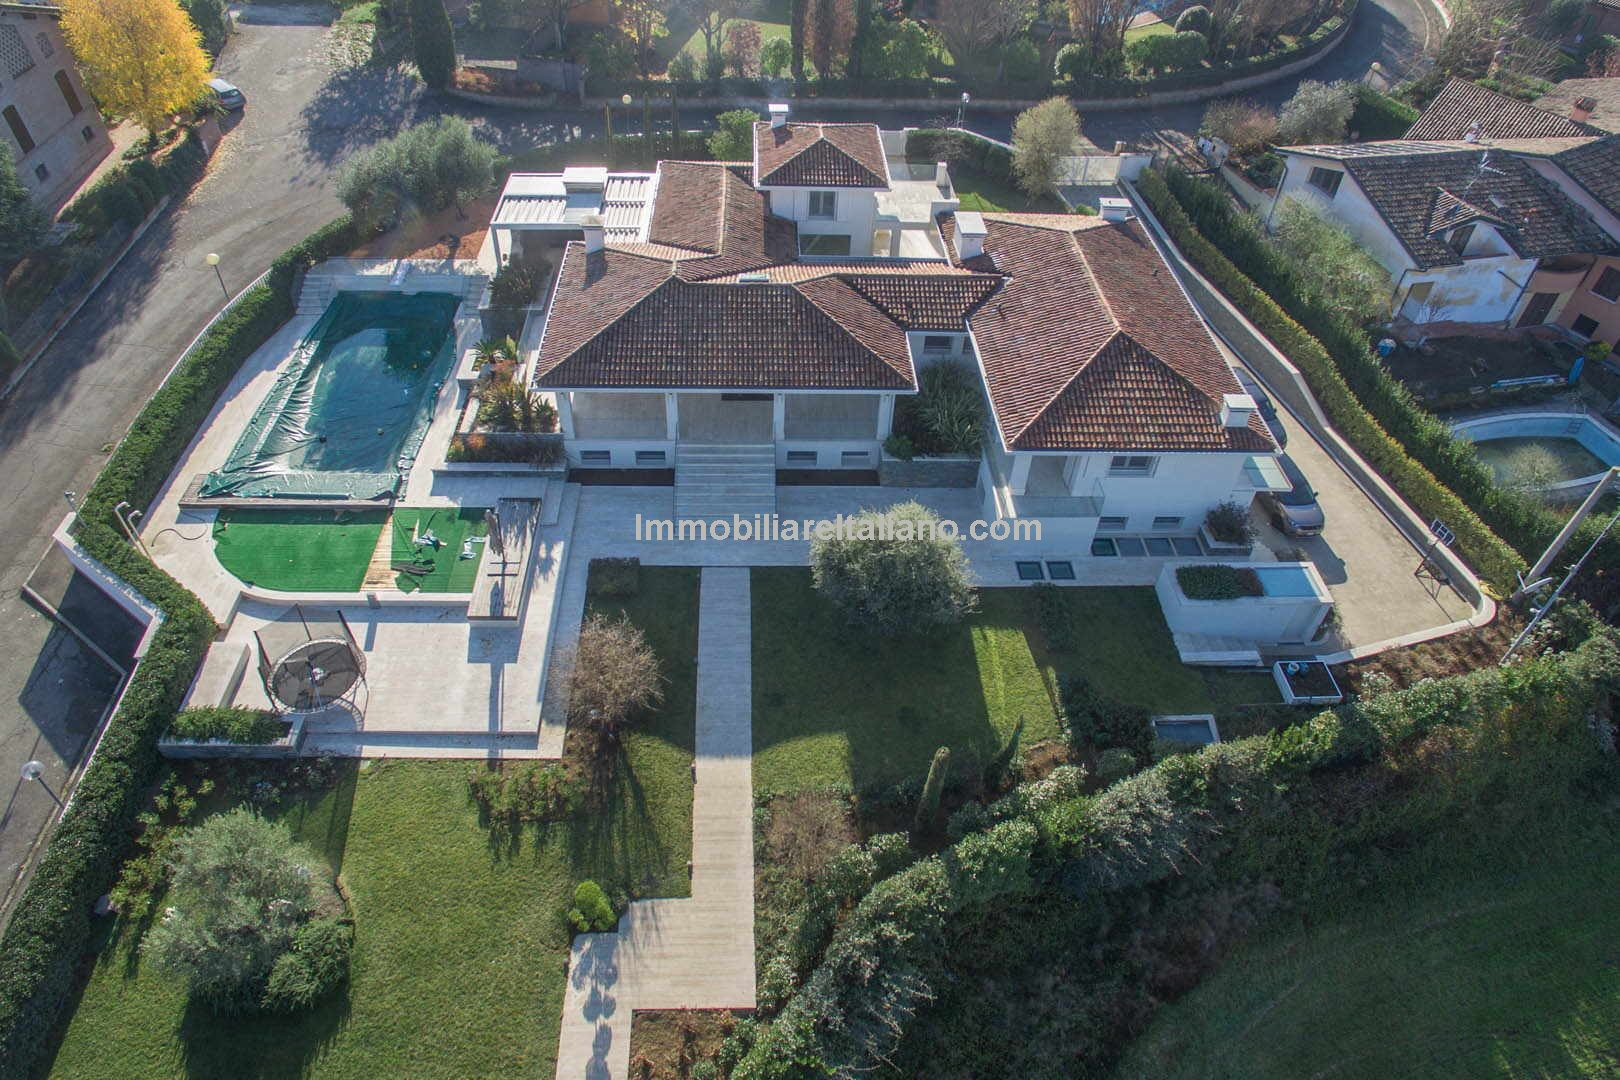 Contemporary designed ultra modern substantial 6 bedroom, seven bathroom detached family villa home, positioned within a highly desirable area near to Reggio Emilia. 900 sqm (9,684 sqft) furnished, two pools and cutting edge technology.